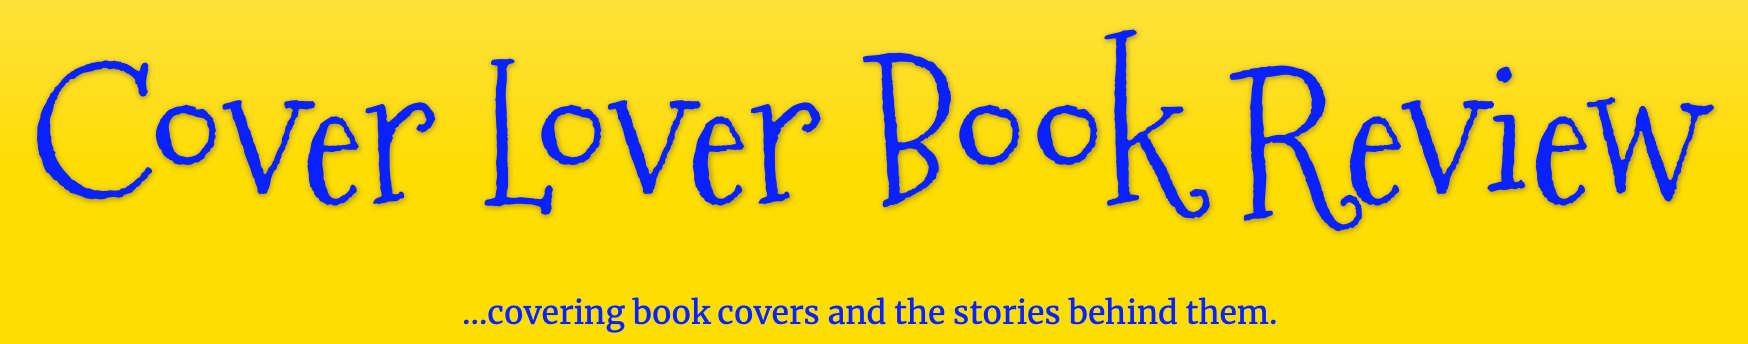 Cover Lover Book Review